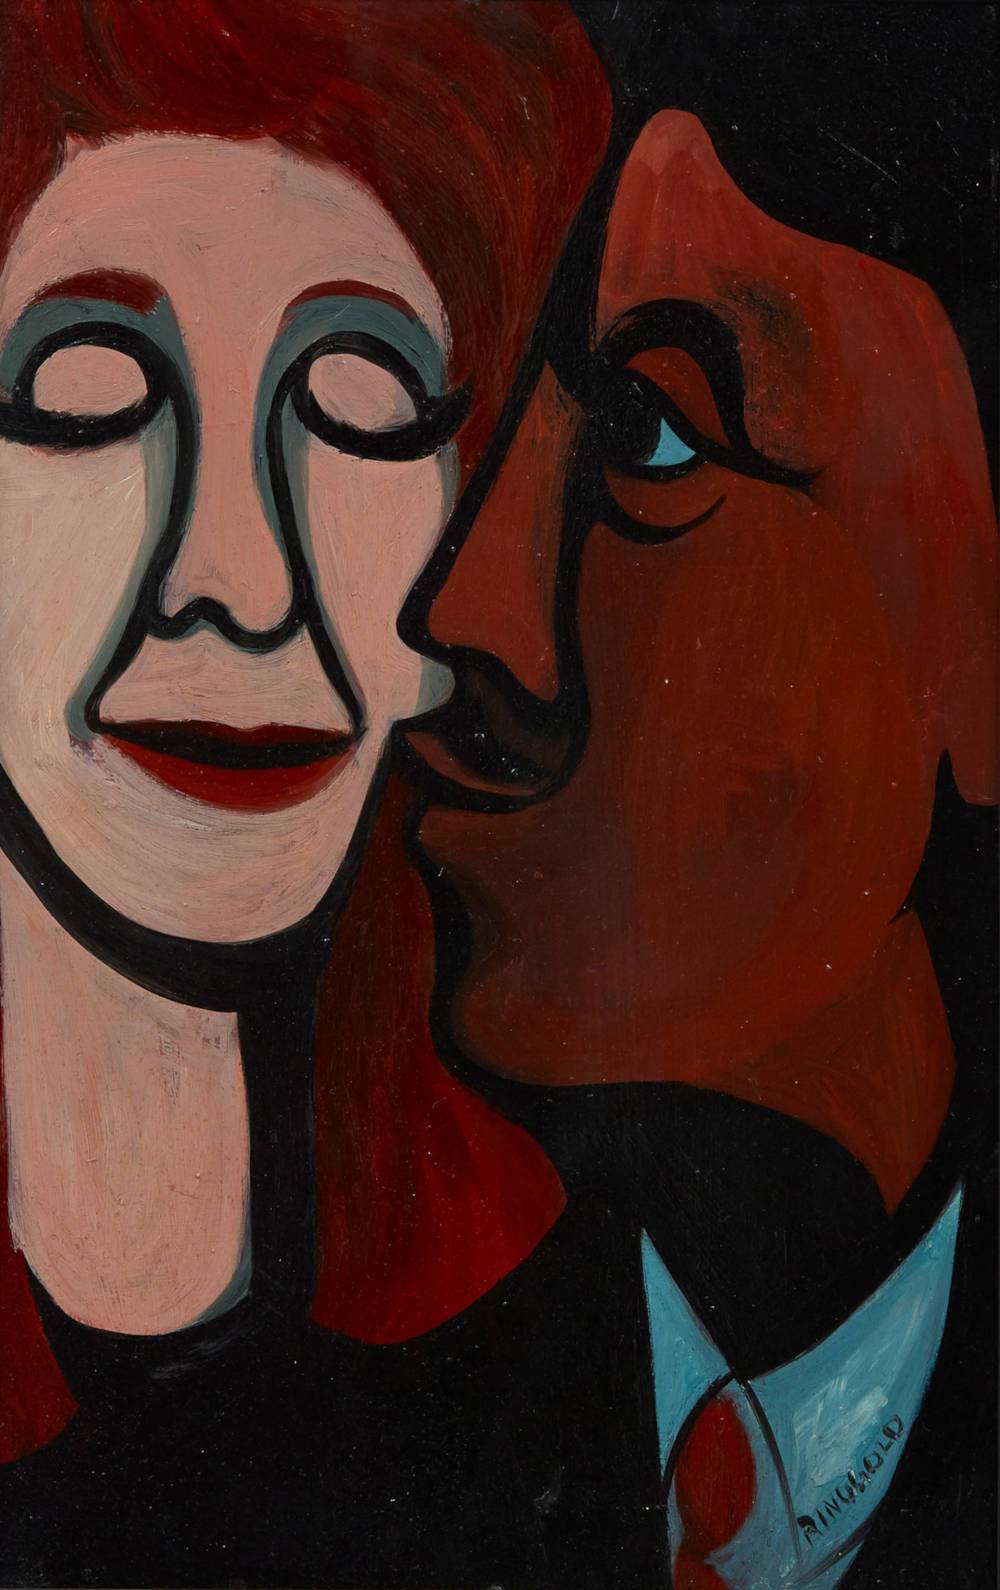 Faith Ringgold, A Man Kissing His Wife, 1964 Oil on masonite 48.3 x 30.5 cm Private collection, courtesy Pippy Houldsworth Gallery, London © 2018 Faith Ringgold / Artists Rights Society (ARS), New York